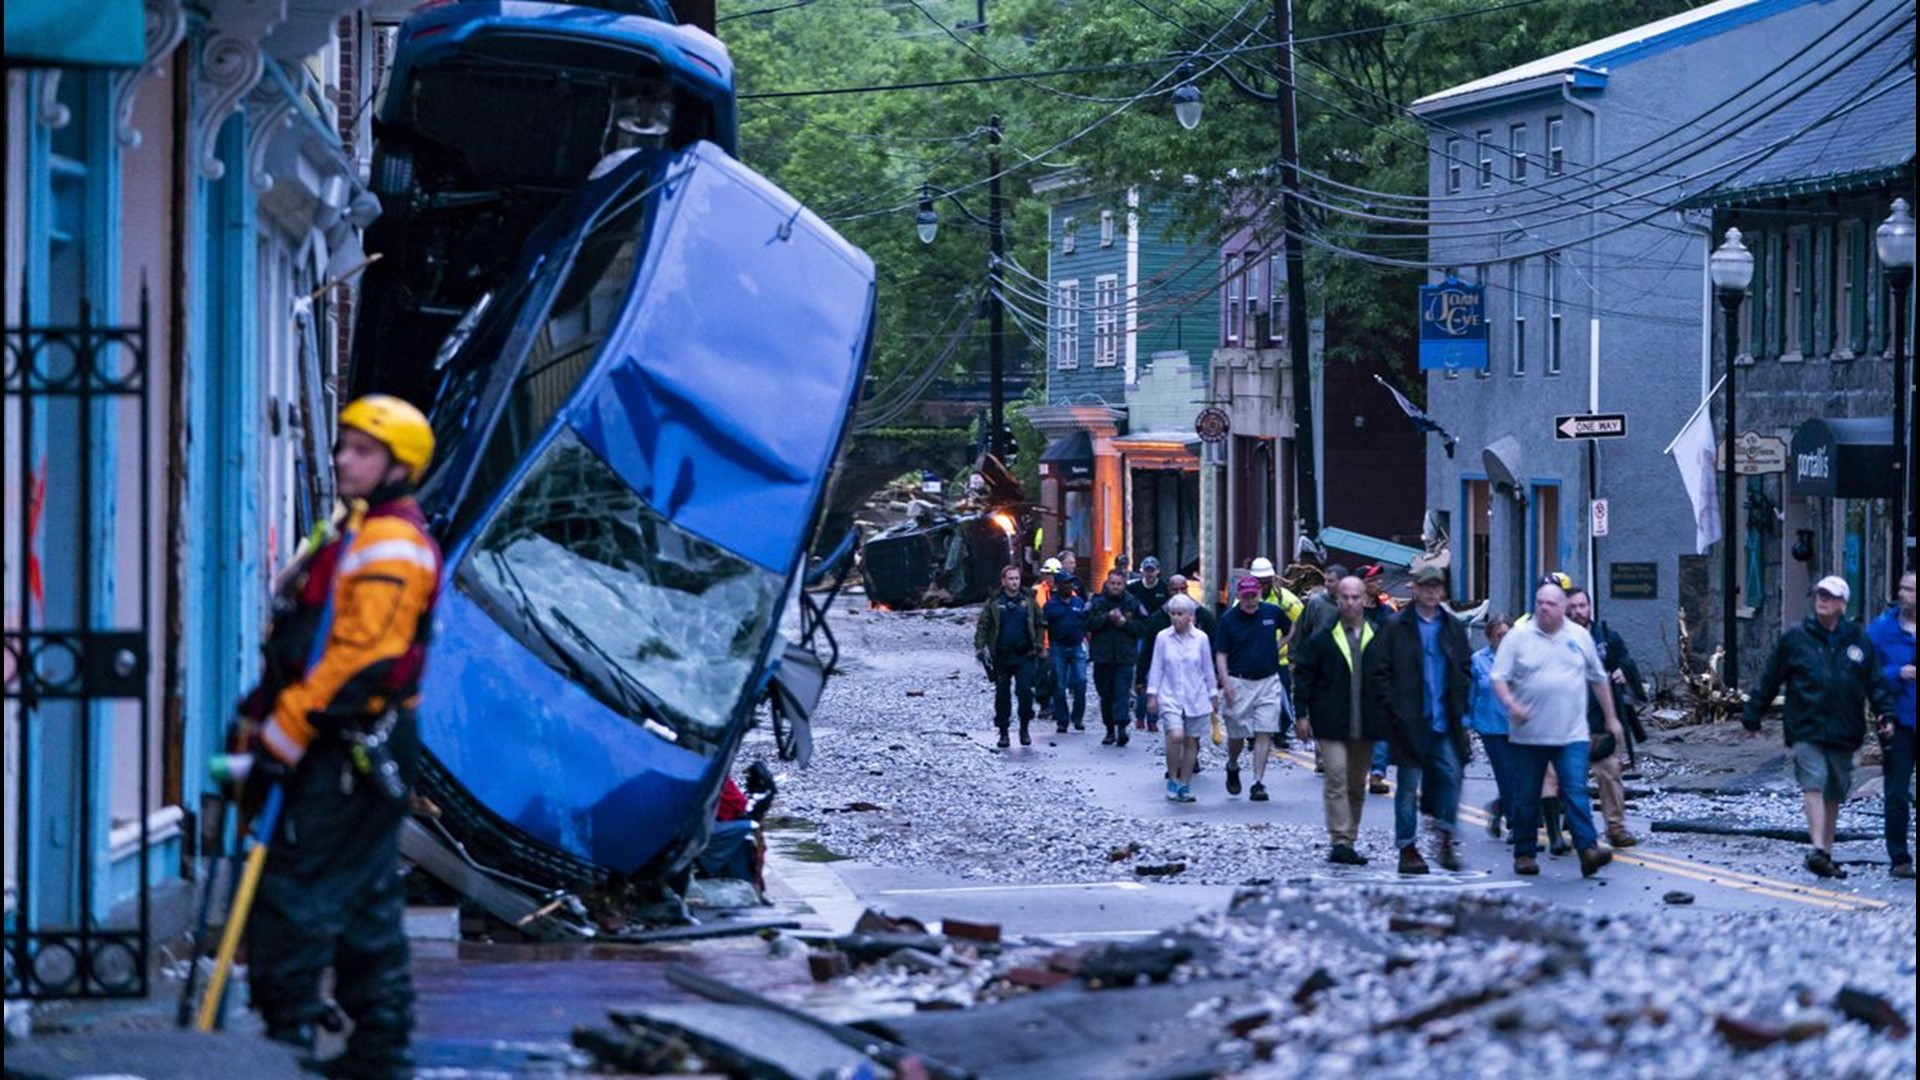 No Words To Describe The Devastation After Ellicott City Flooding In Maryland Wltx Com